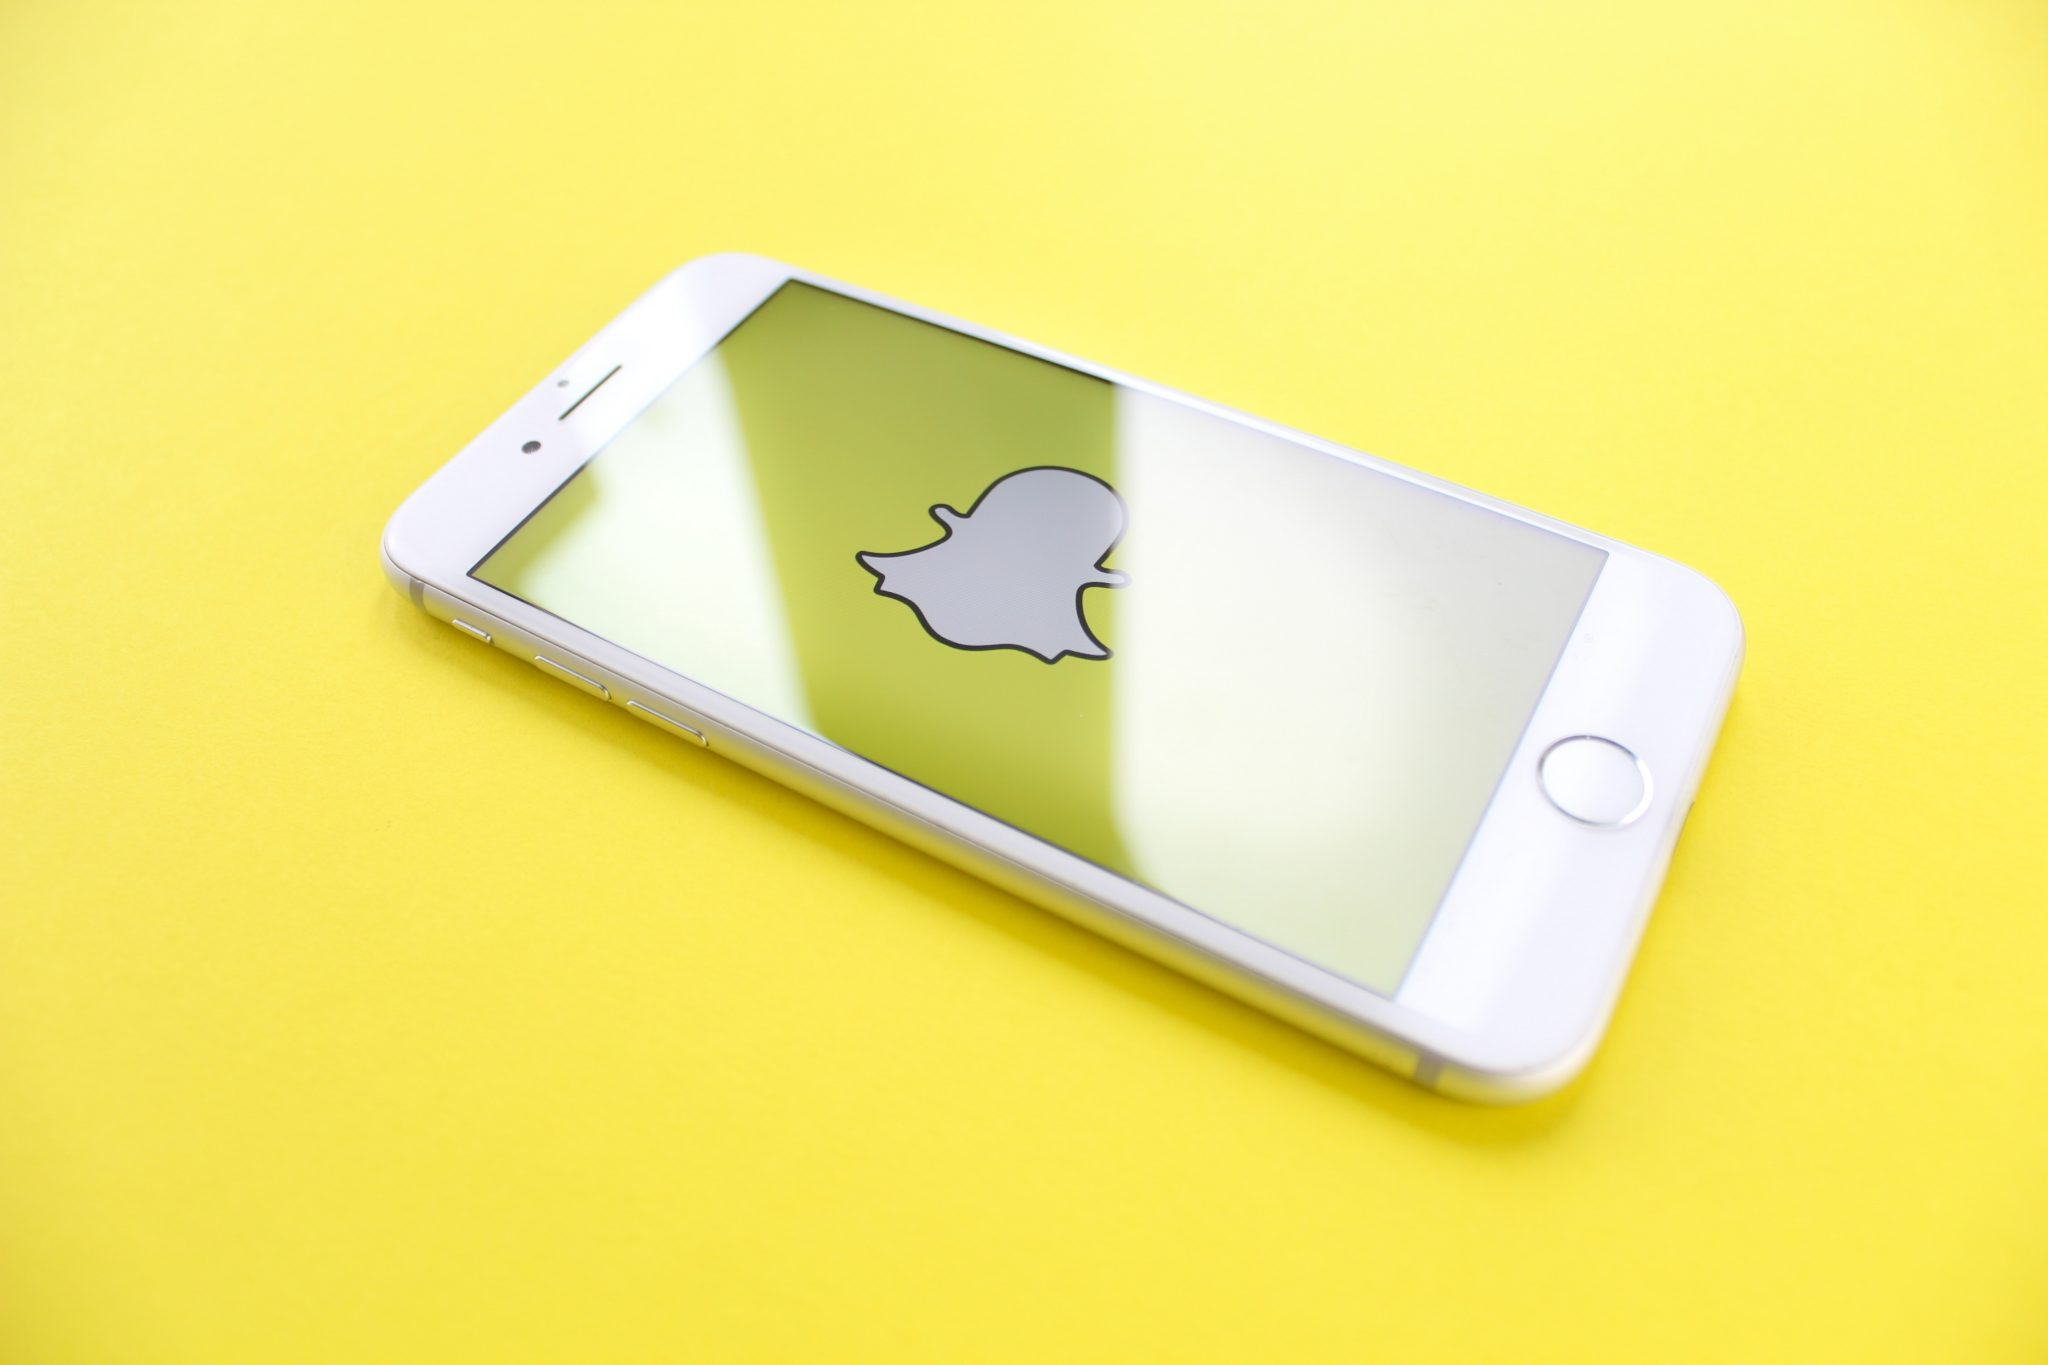 Snapchat ghost icon on iPhone 7 with a yellow background